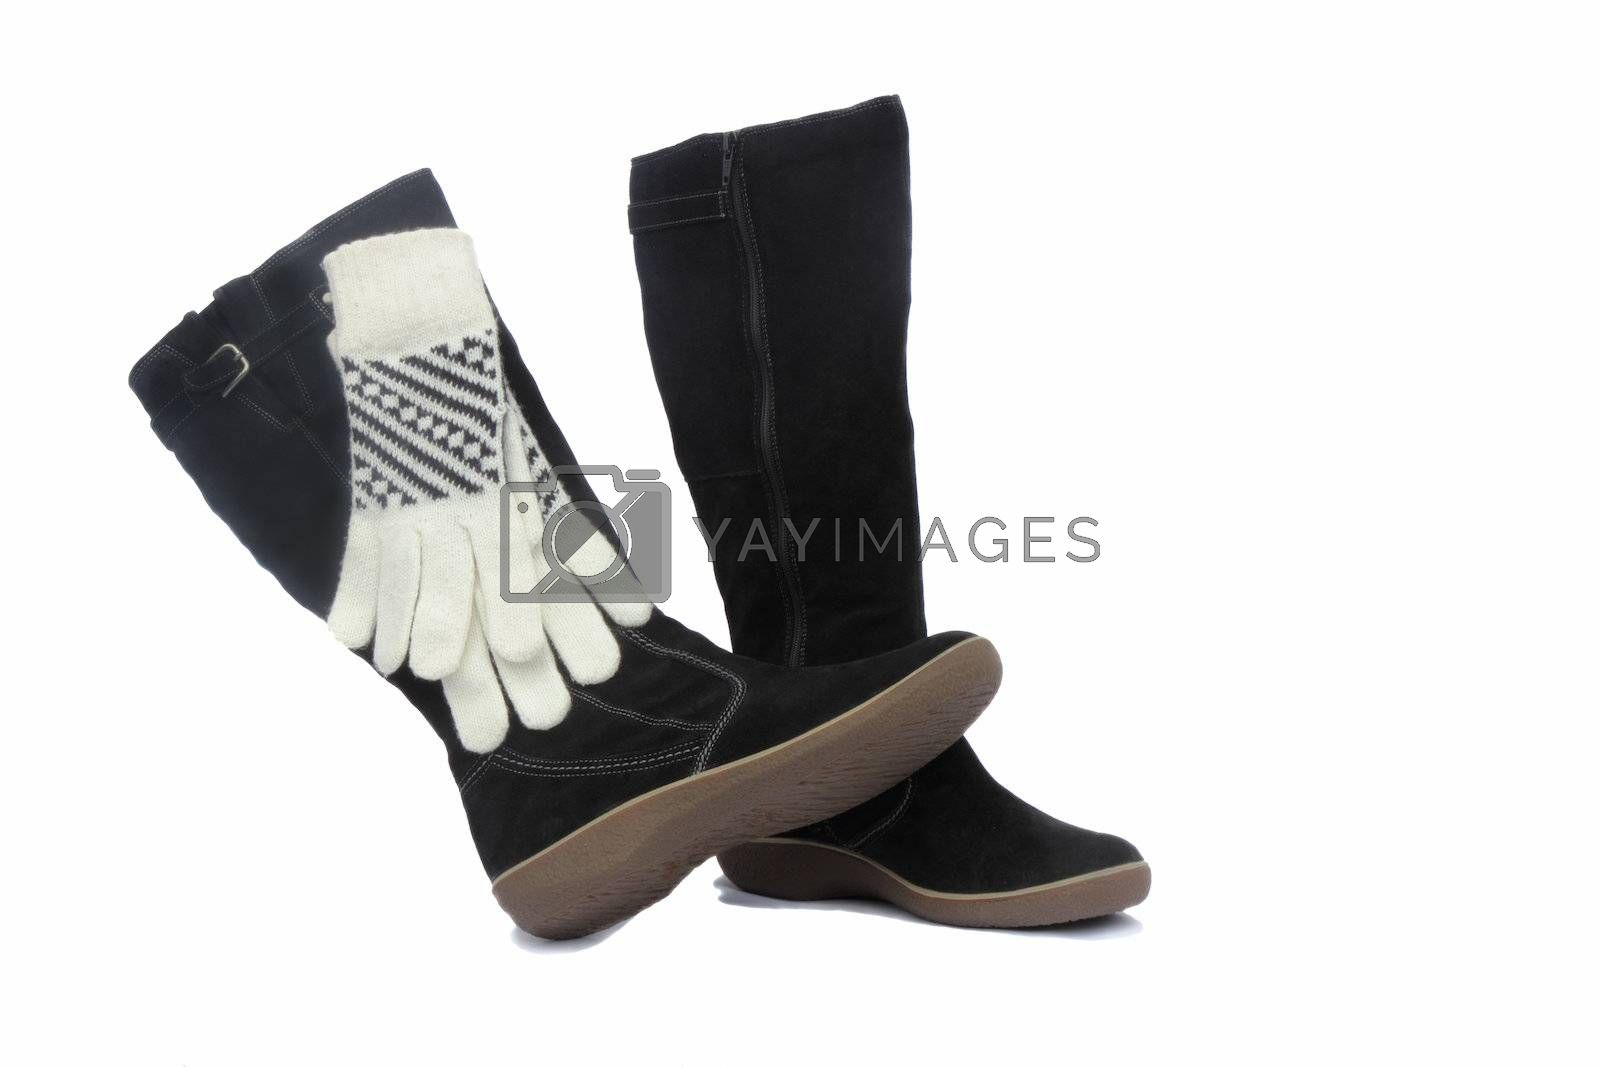 Winter suede black boots and white with black ornament gloves. Presented on a white background.